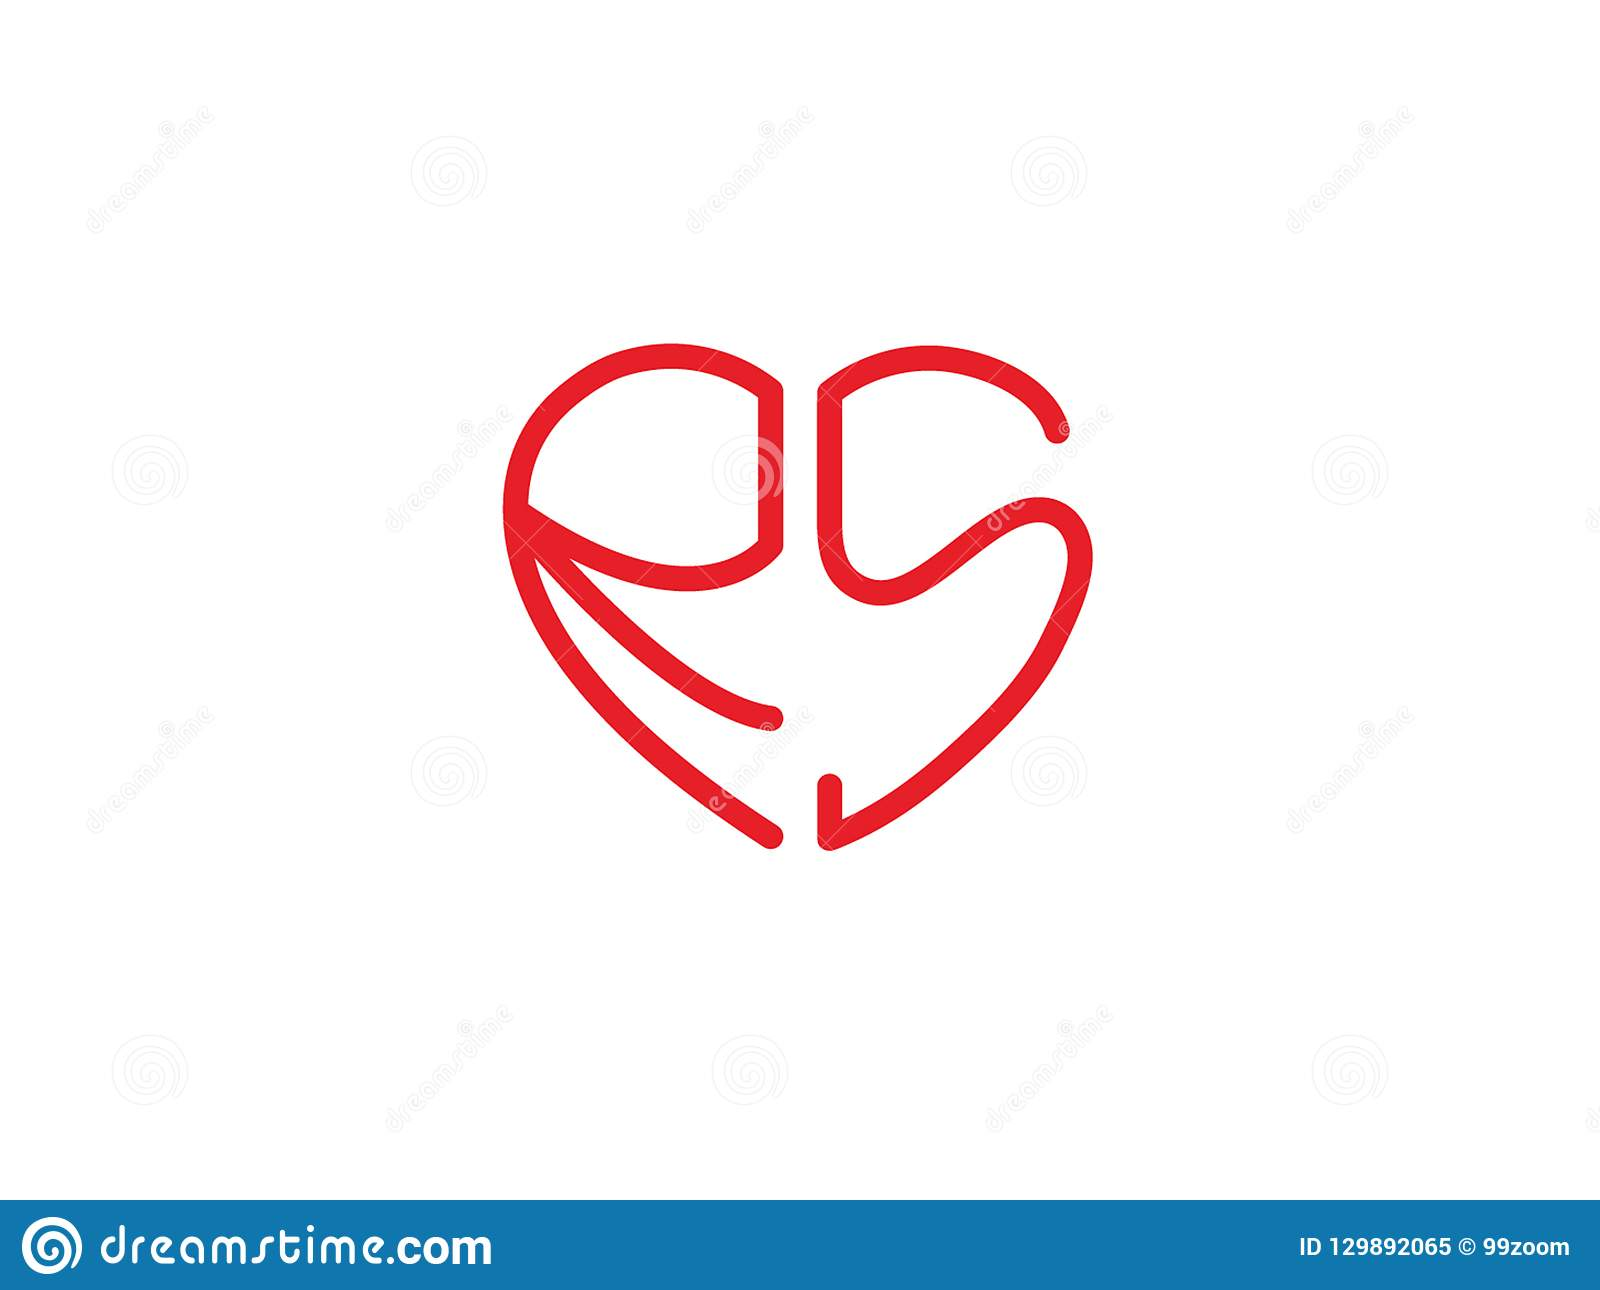 Rs Initial Heart Shape Red Colored Love Logo Stock Vector